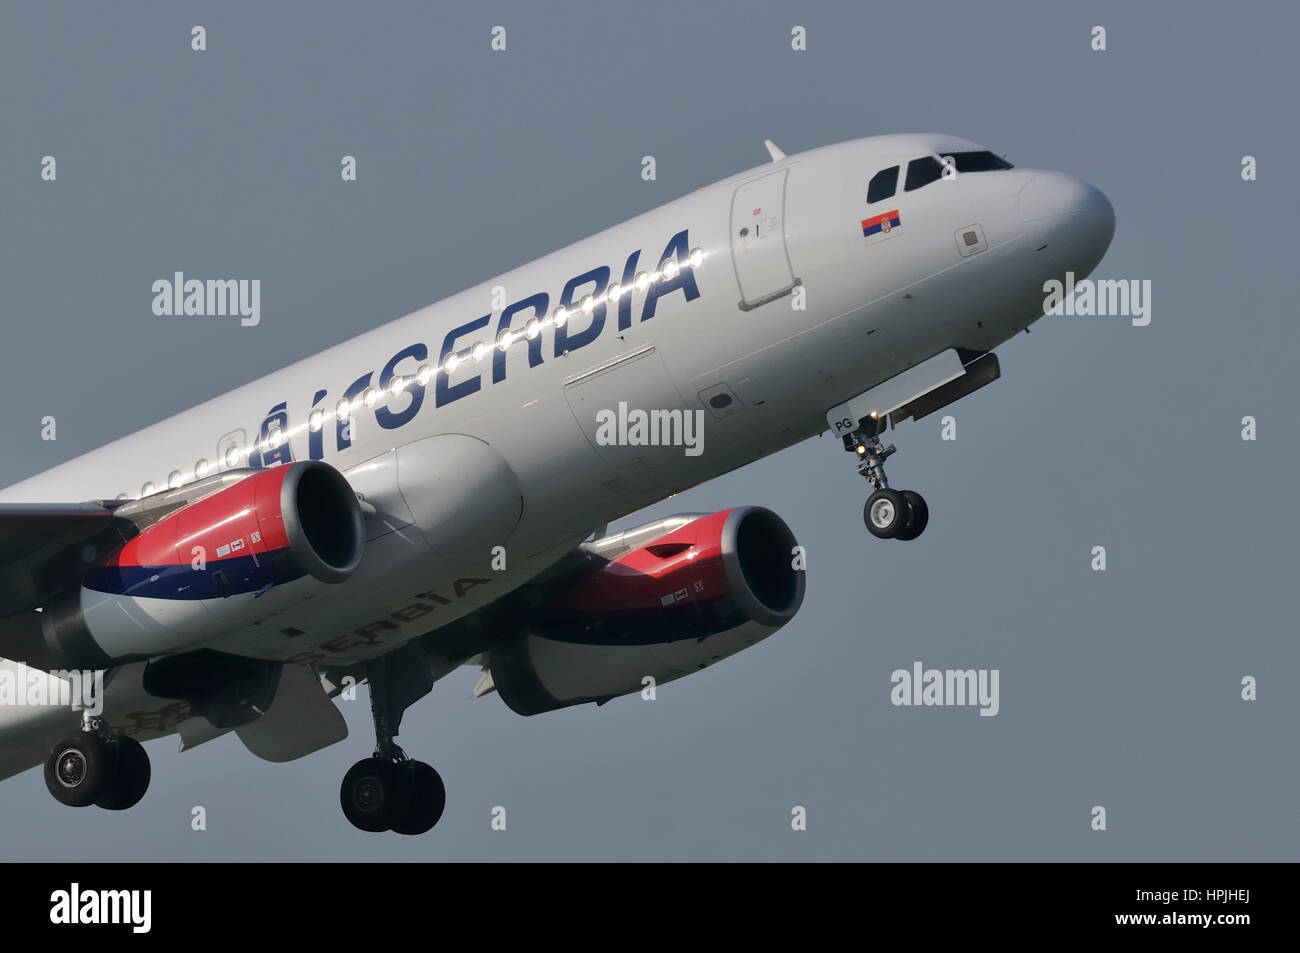 Air Serbia, national airline of Serbia Airbus A320-200 two-engine single-aisle passenger jet aircraft during take - Stock Image